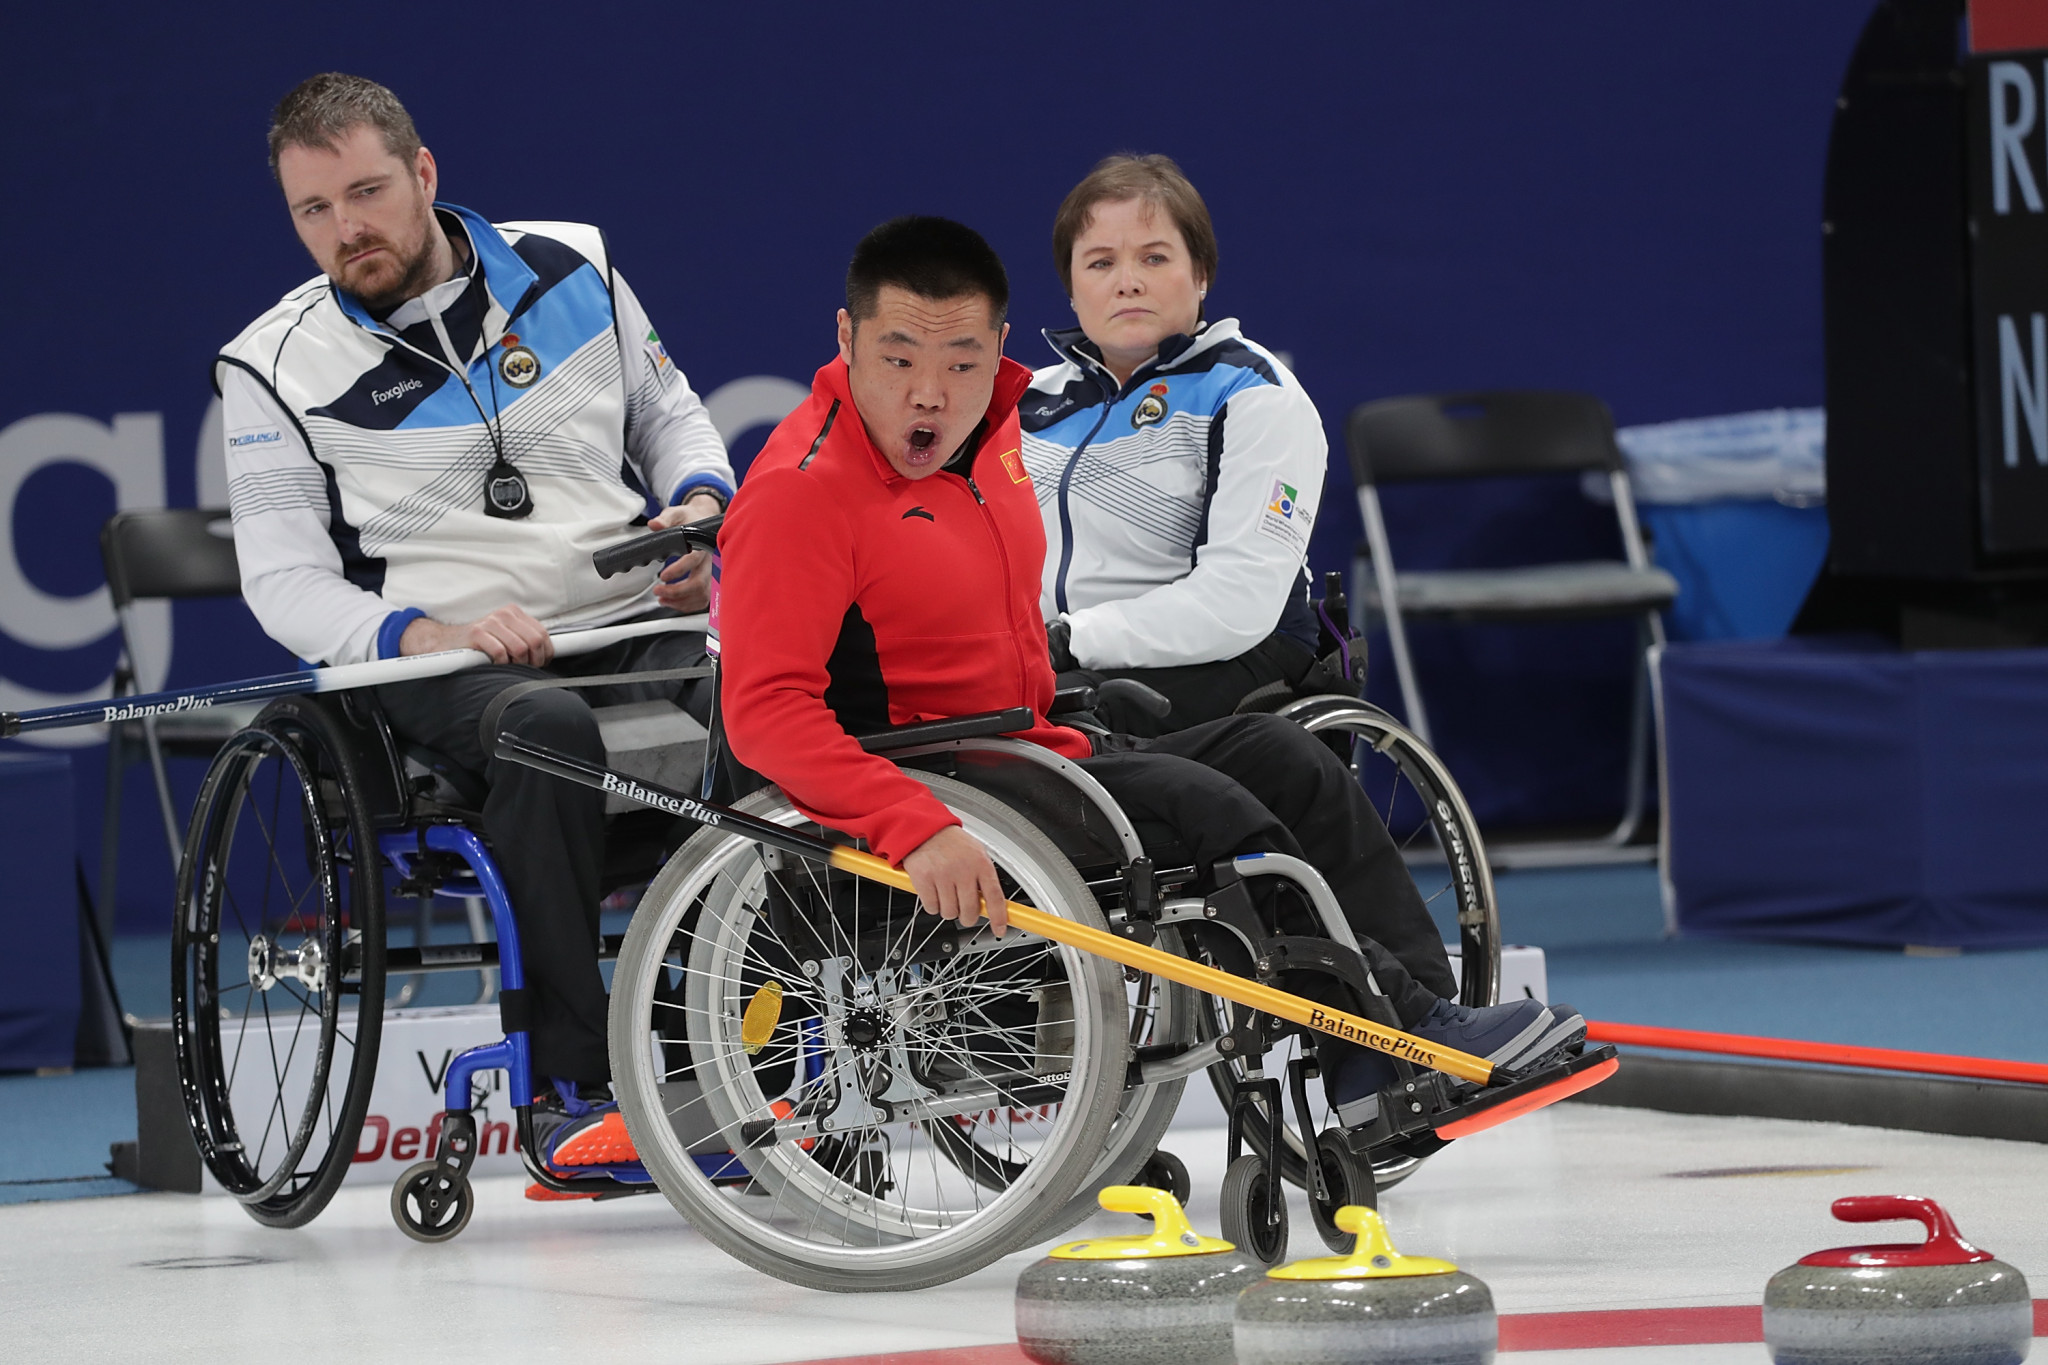 The World Wheelchair Curling Championship has been postponed after test events for the Beijing 2022 Winter Paralympic Games were cancelled ©Getty Images